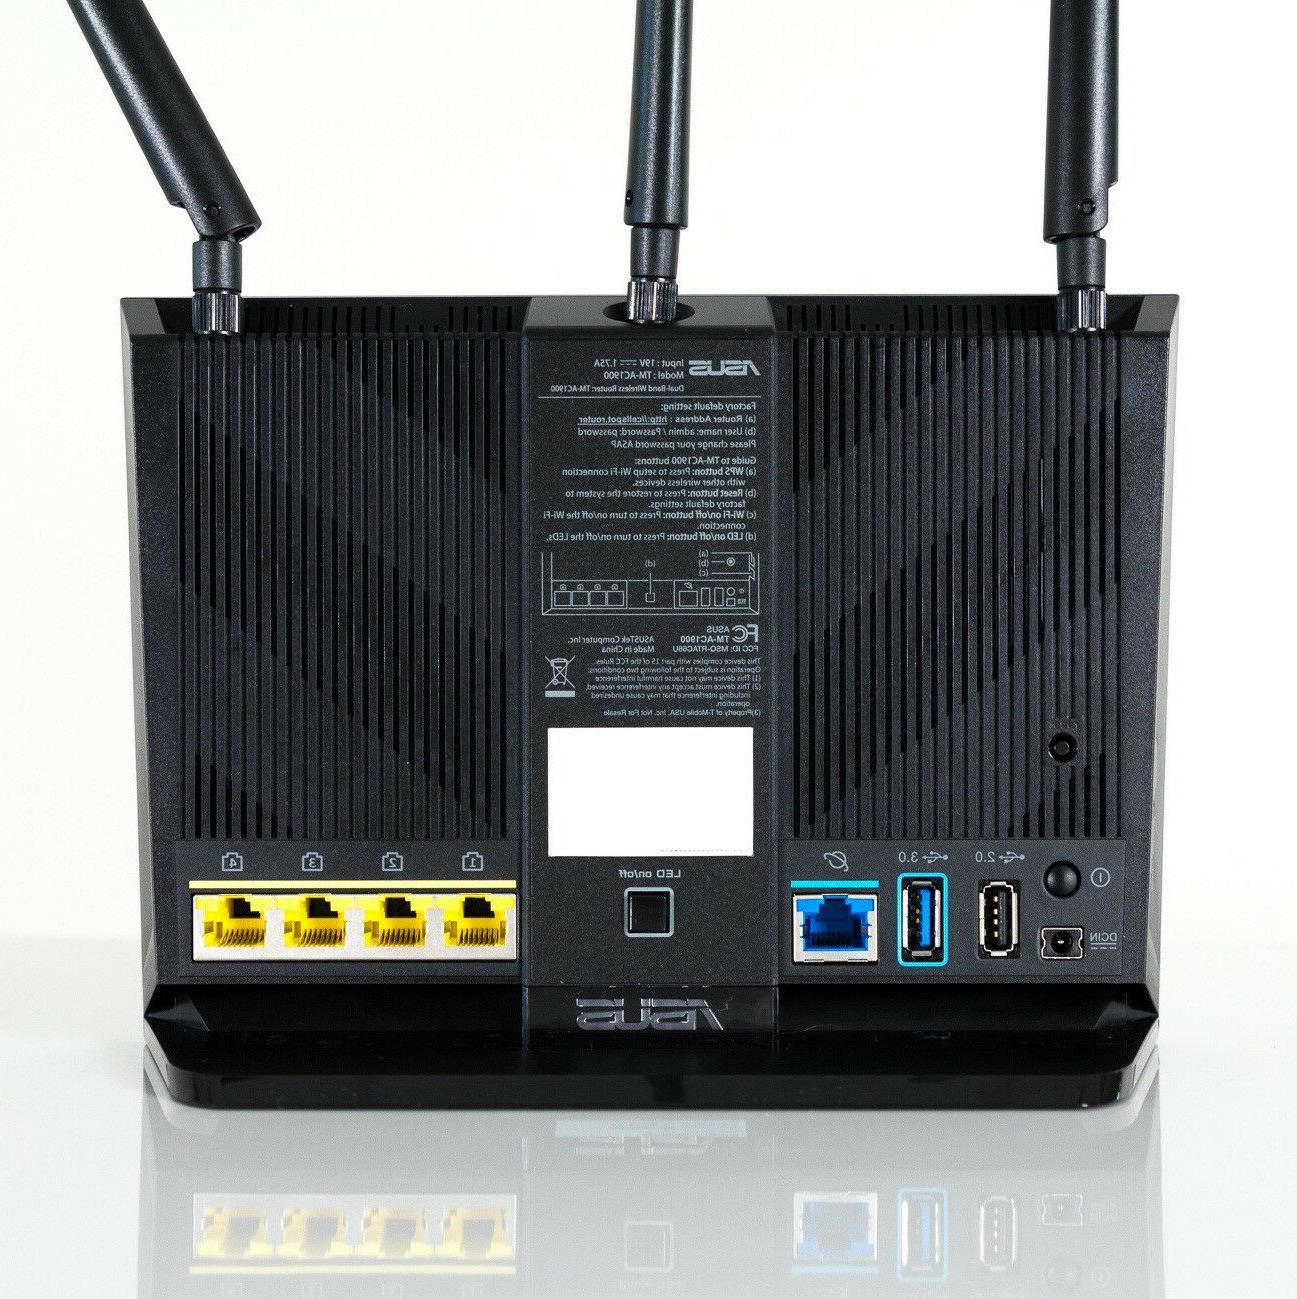 ASUS Personal CellSpot Dual-Band Wireless Router